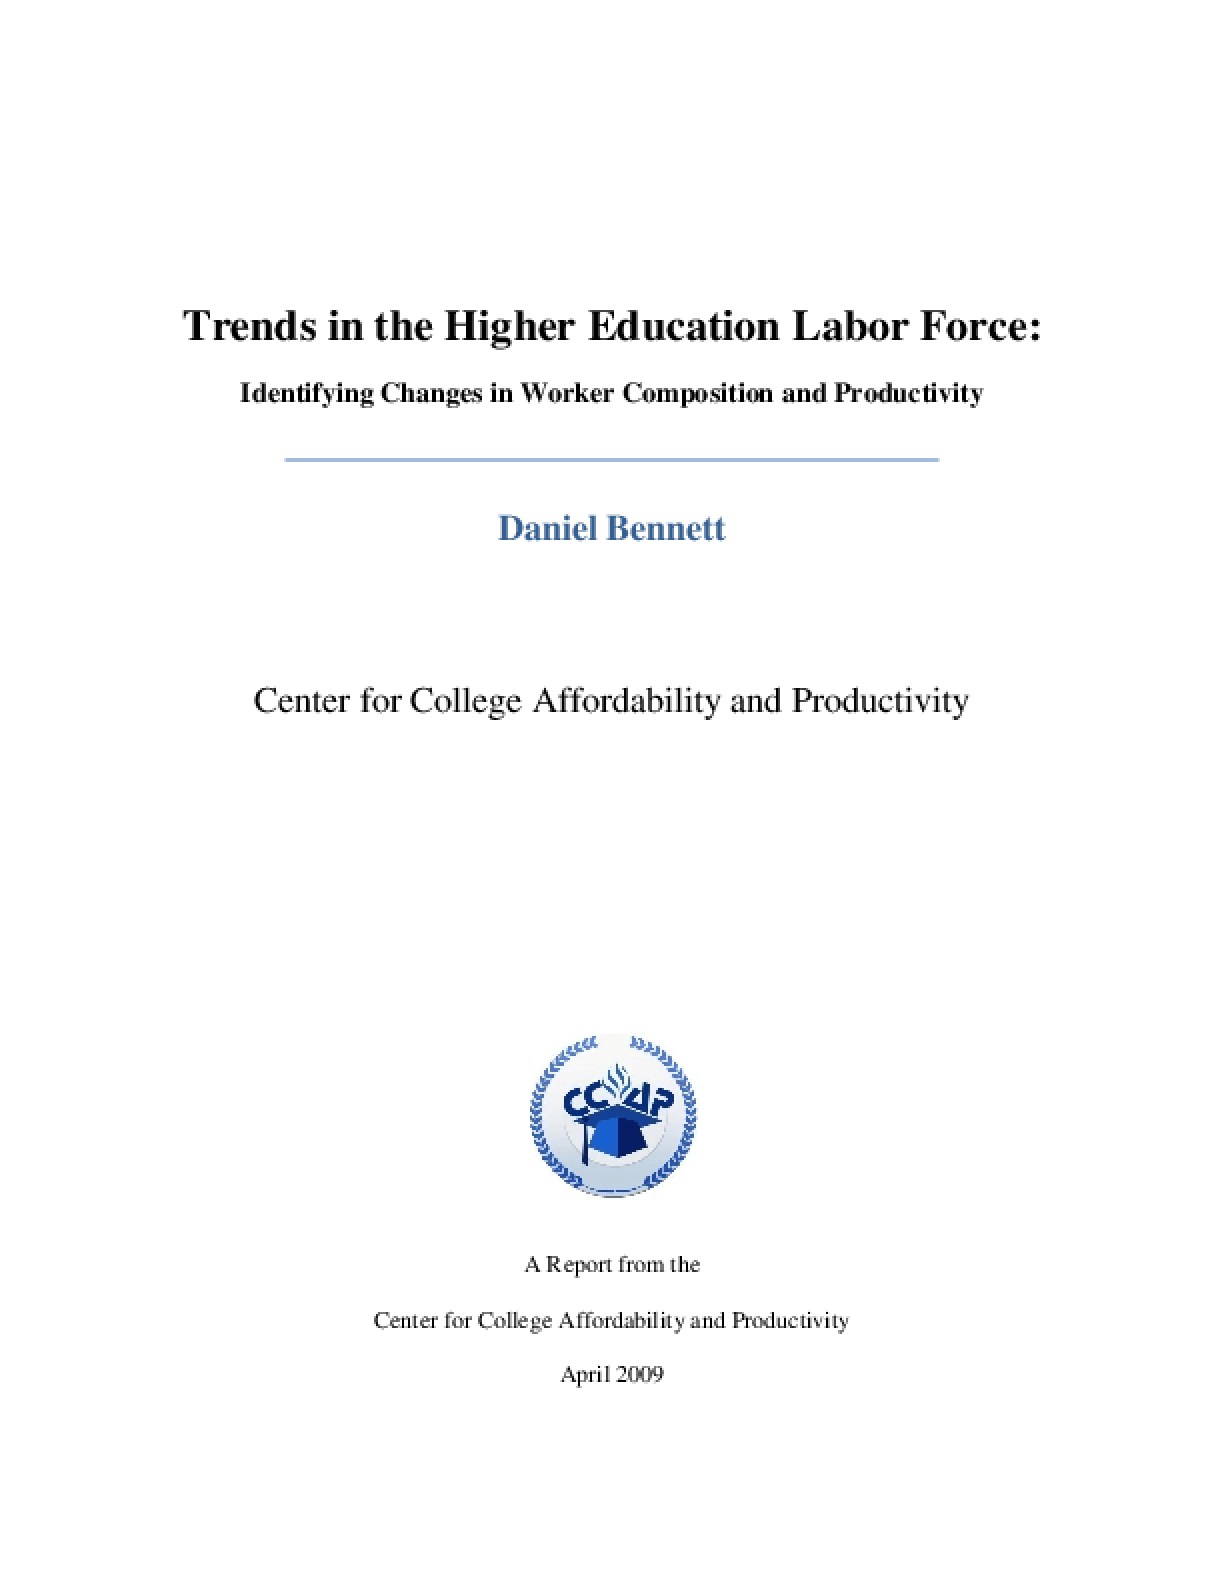 Trends in the HIgher Education Labor Force: Identifying Changes in Worker Composition and Productivity